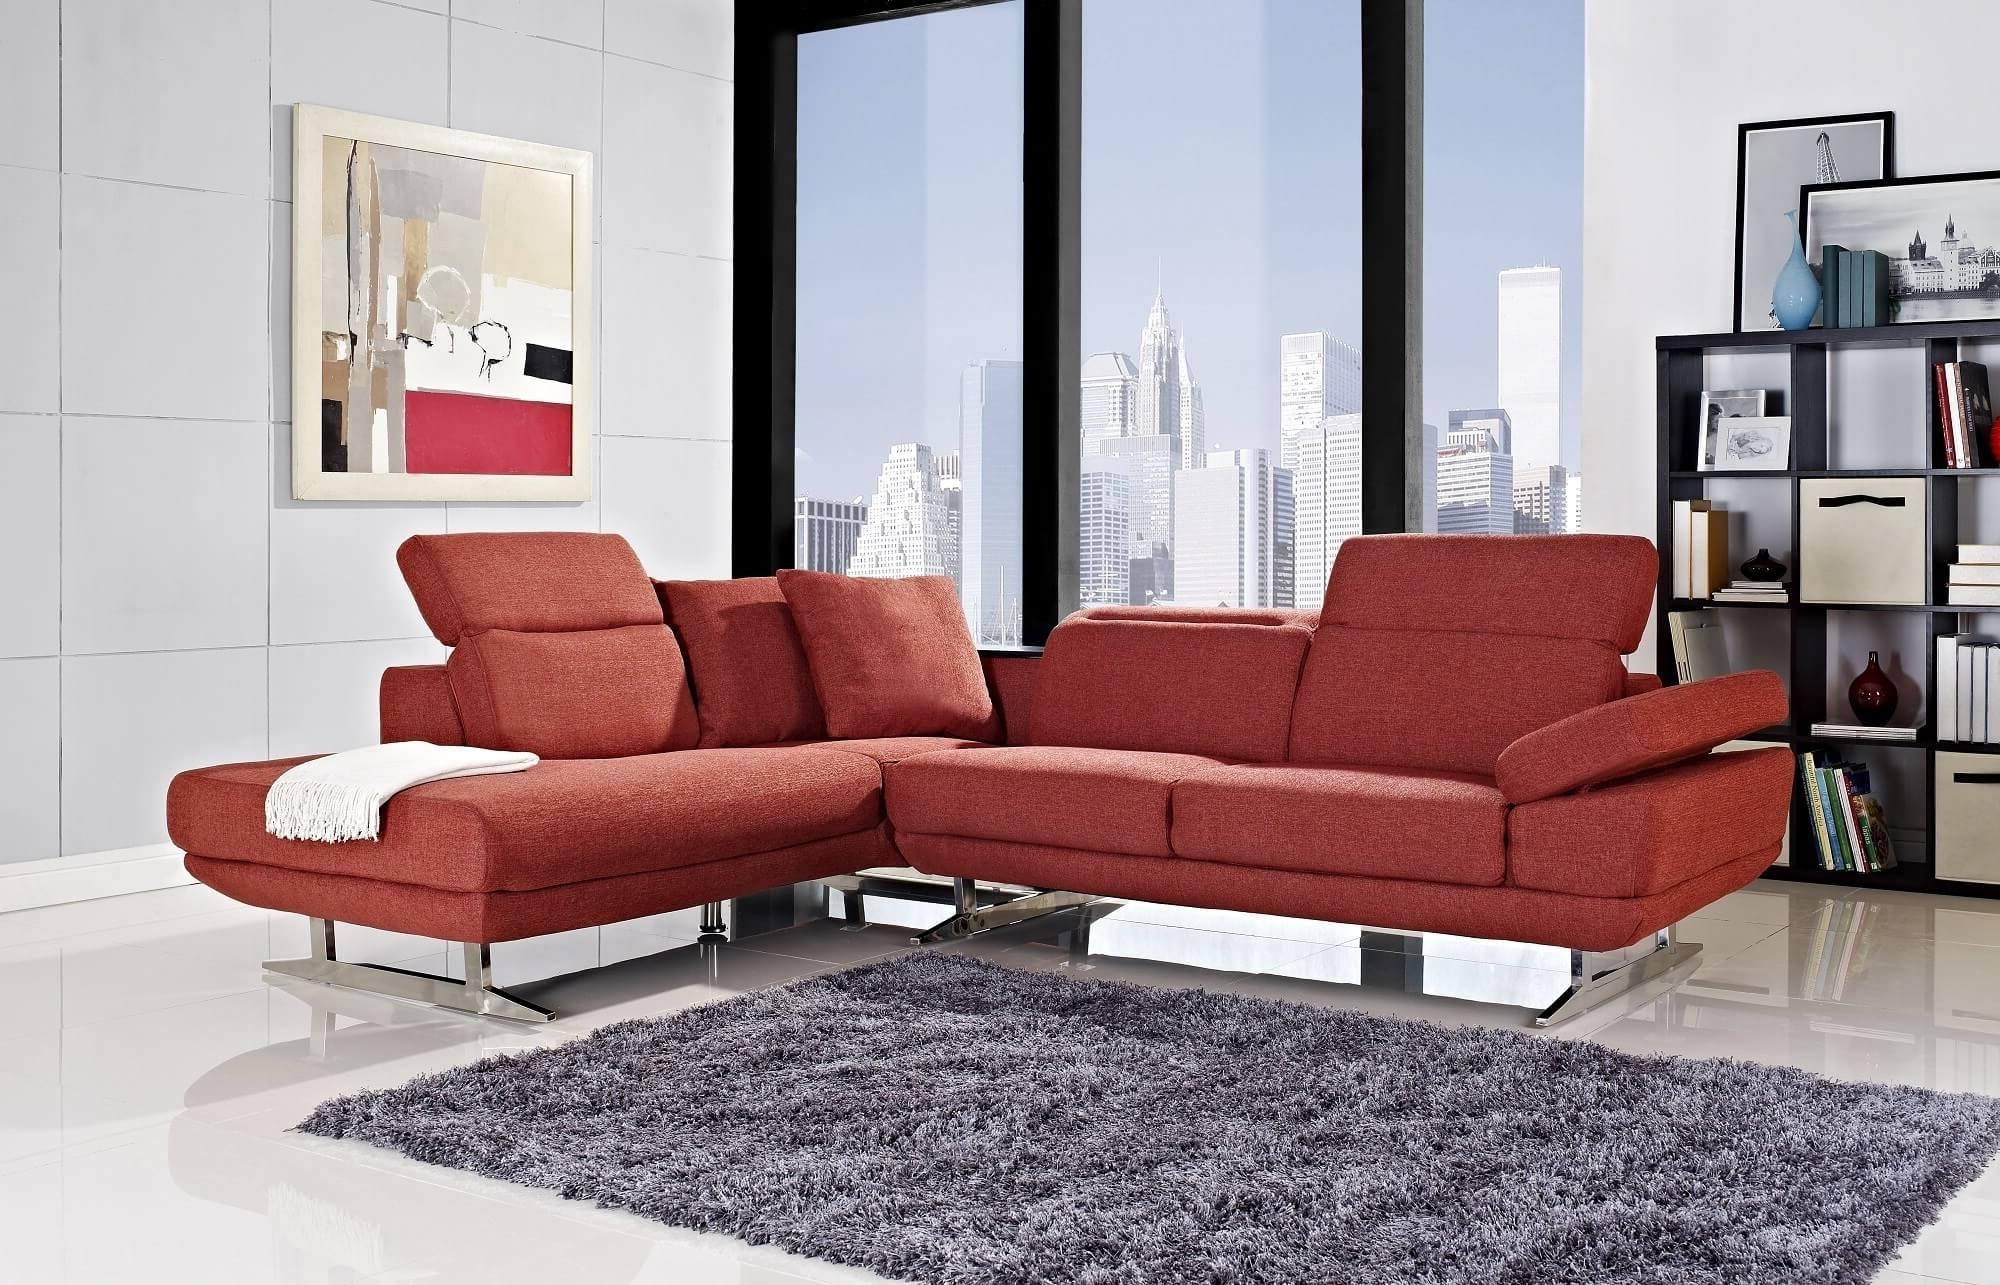 Small Red Leather Sectional Sofas In Most Recently Released 18 Stylish Modern Red Sectional Sofas (View 12 of 20)